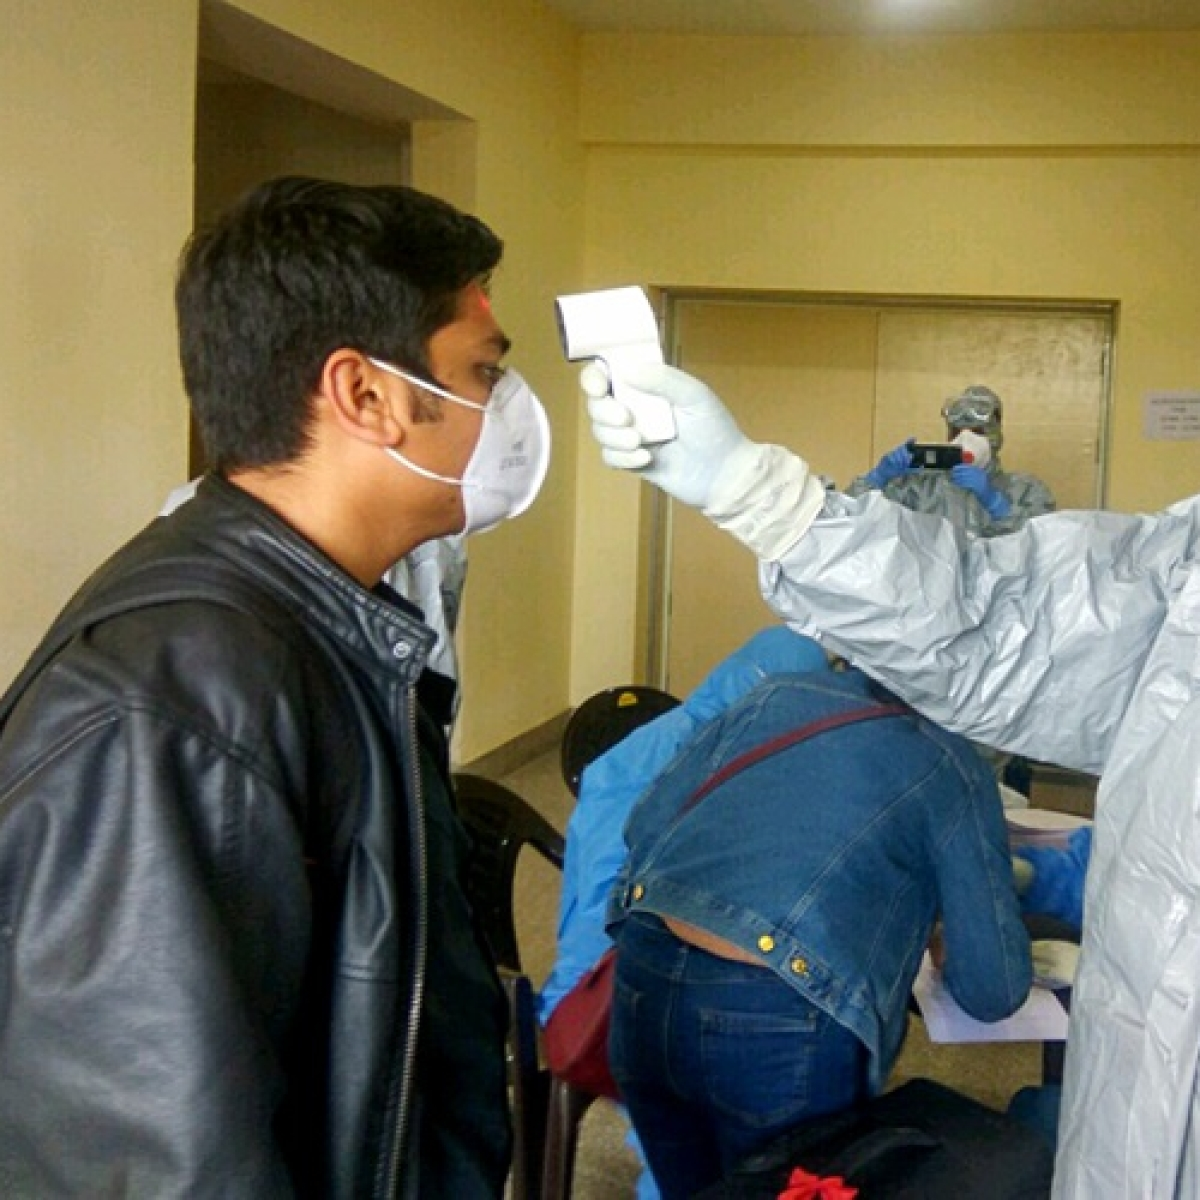 Coronavirus updates from India and the world: COVID-19 cases rise to 107 in Maharashtra